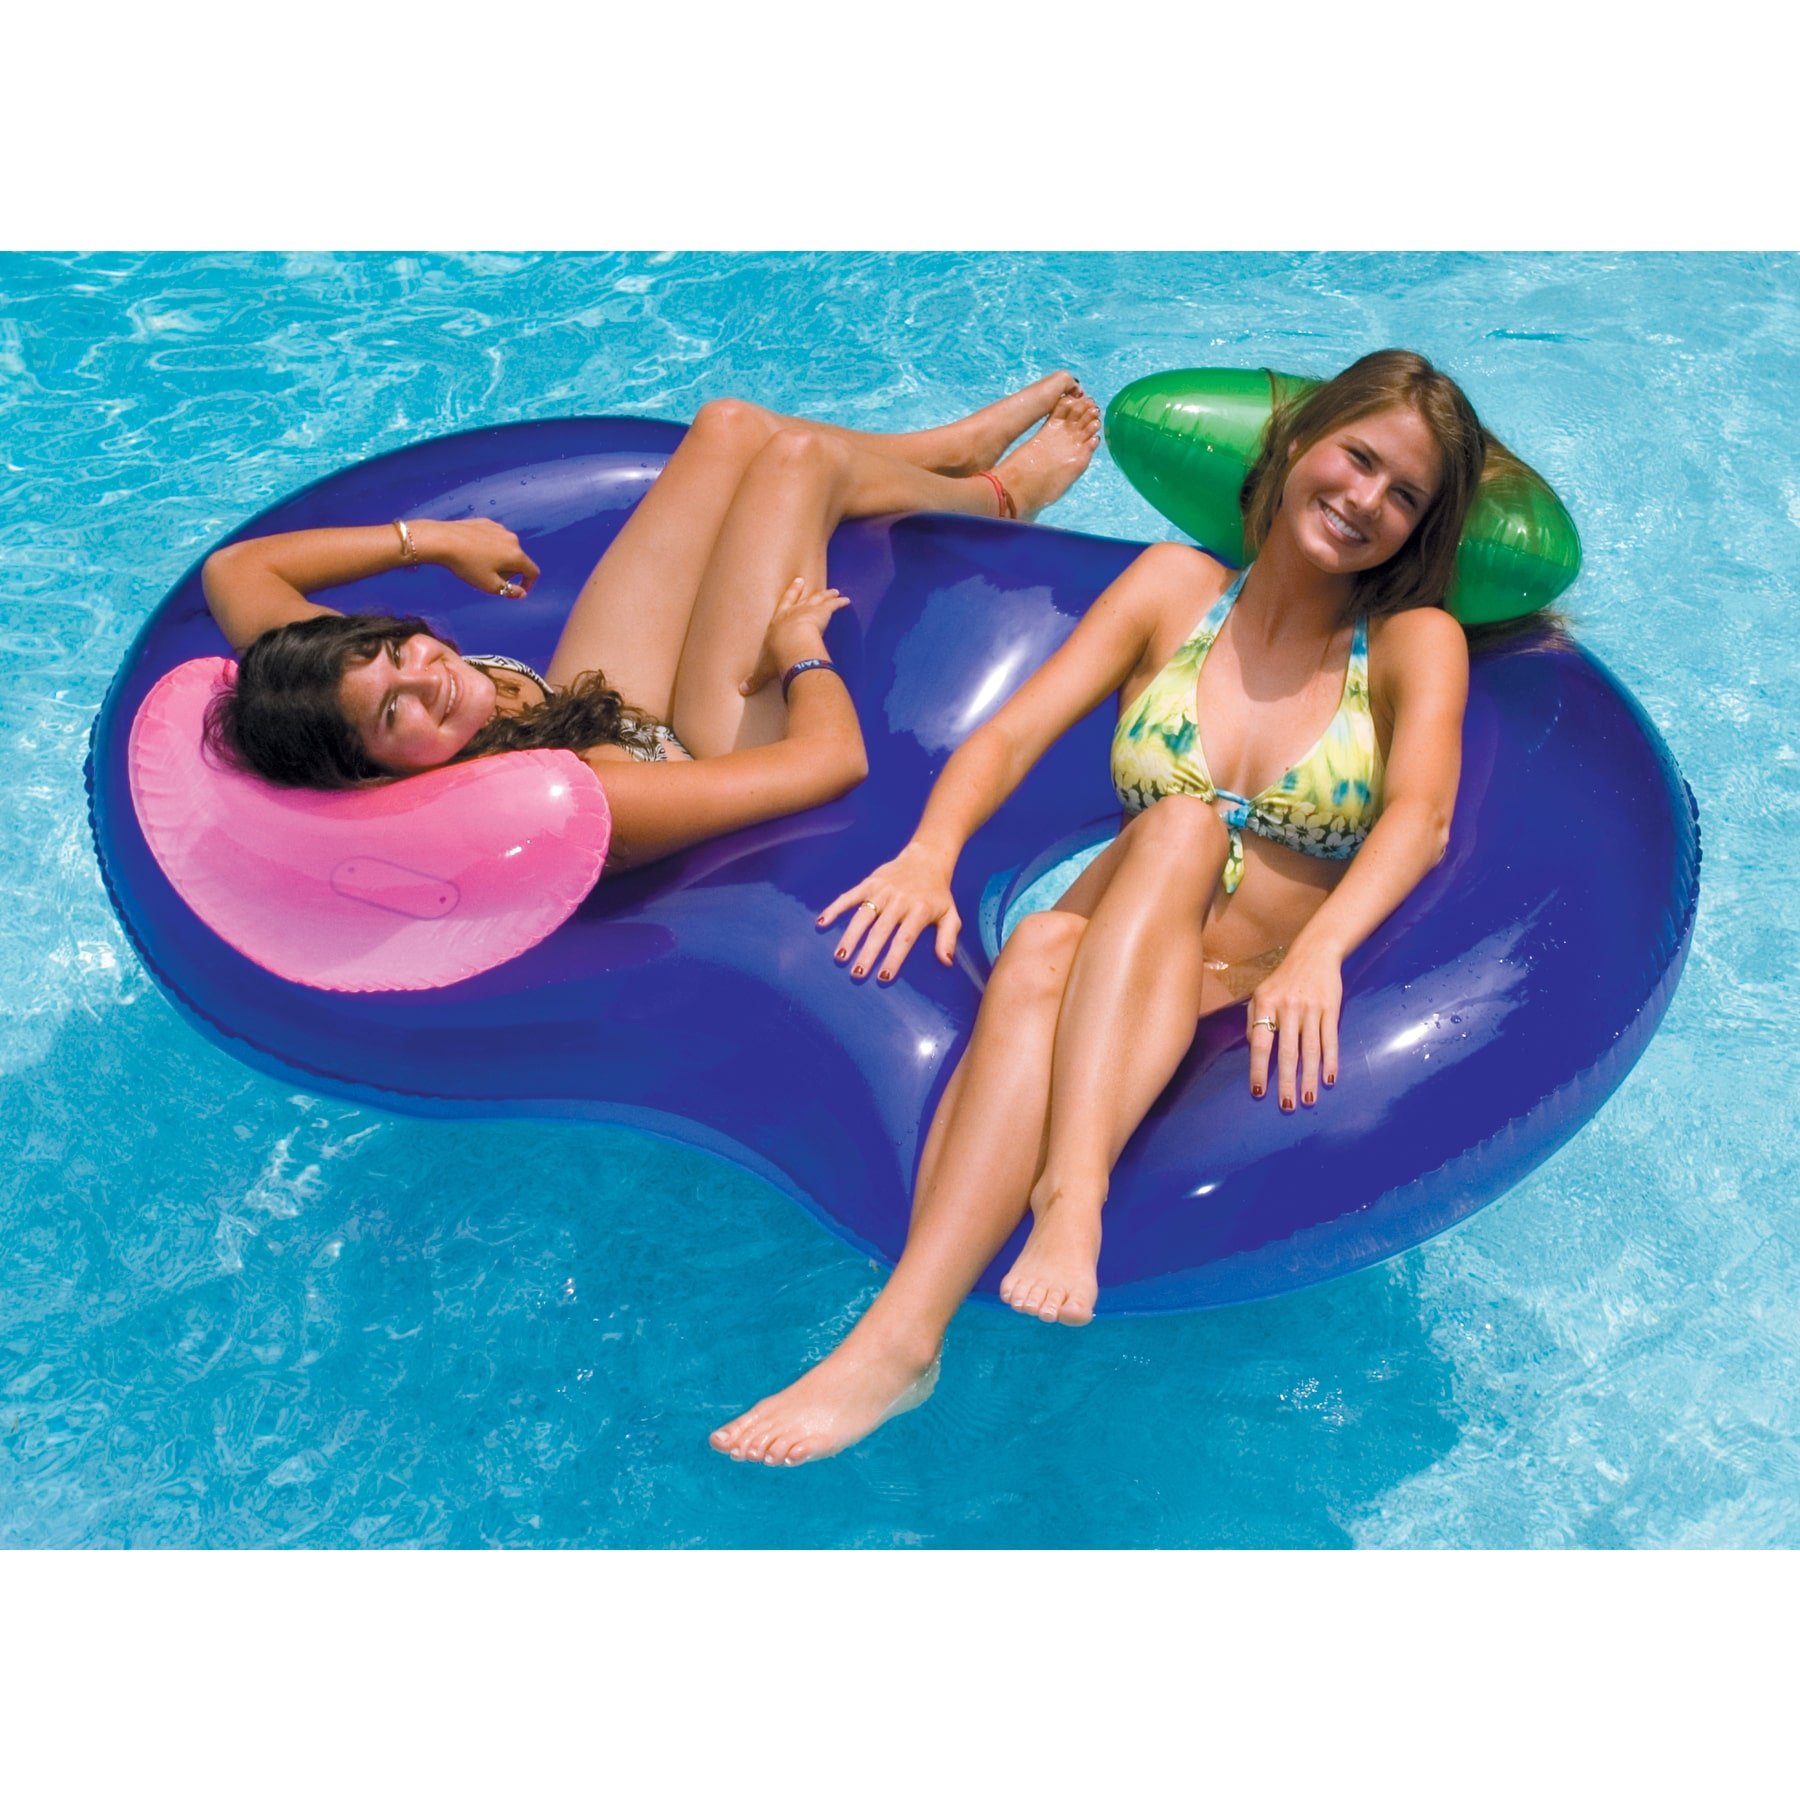 Swimline SideBySide Inflatable Lounger for Swimming Pools